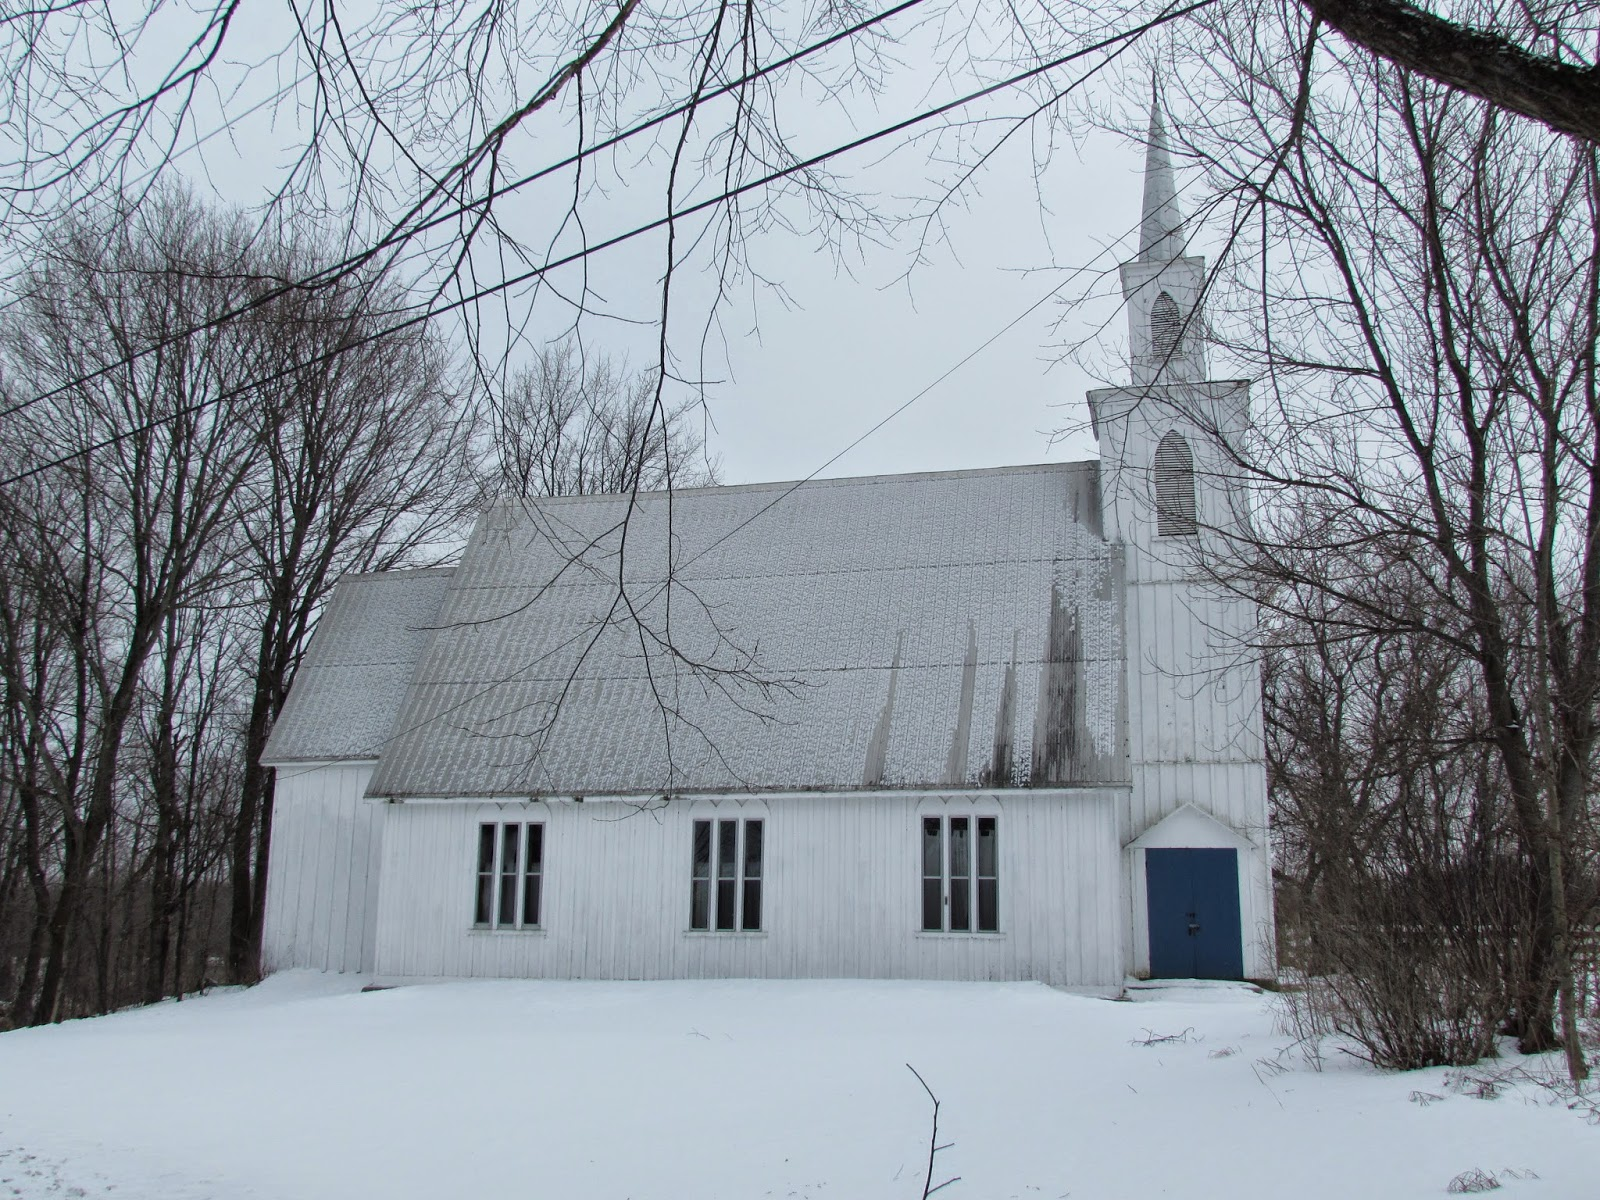 St. Peter's Anglican Church, Queensborough